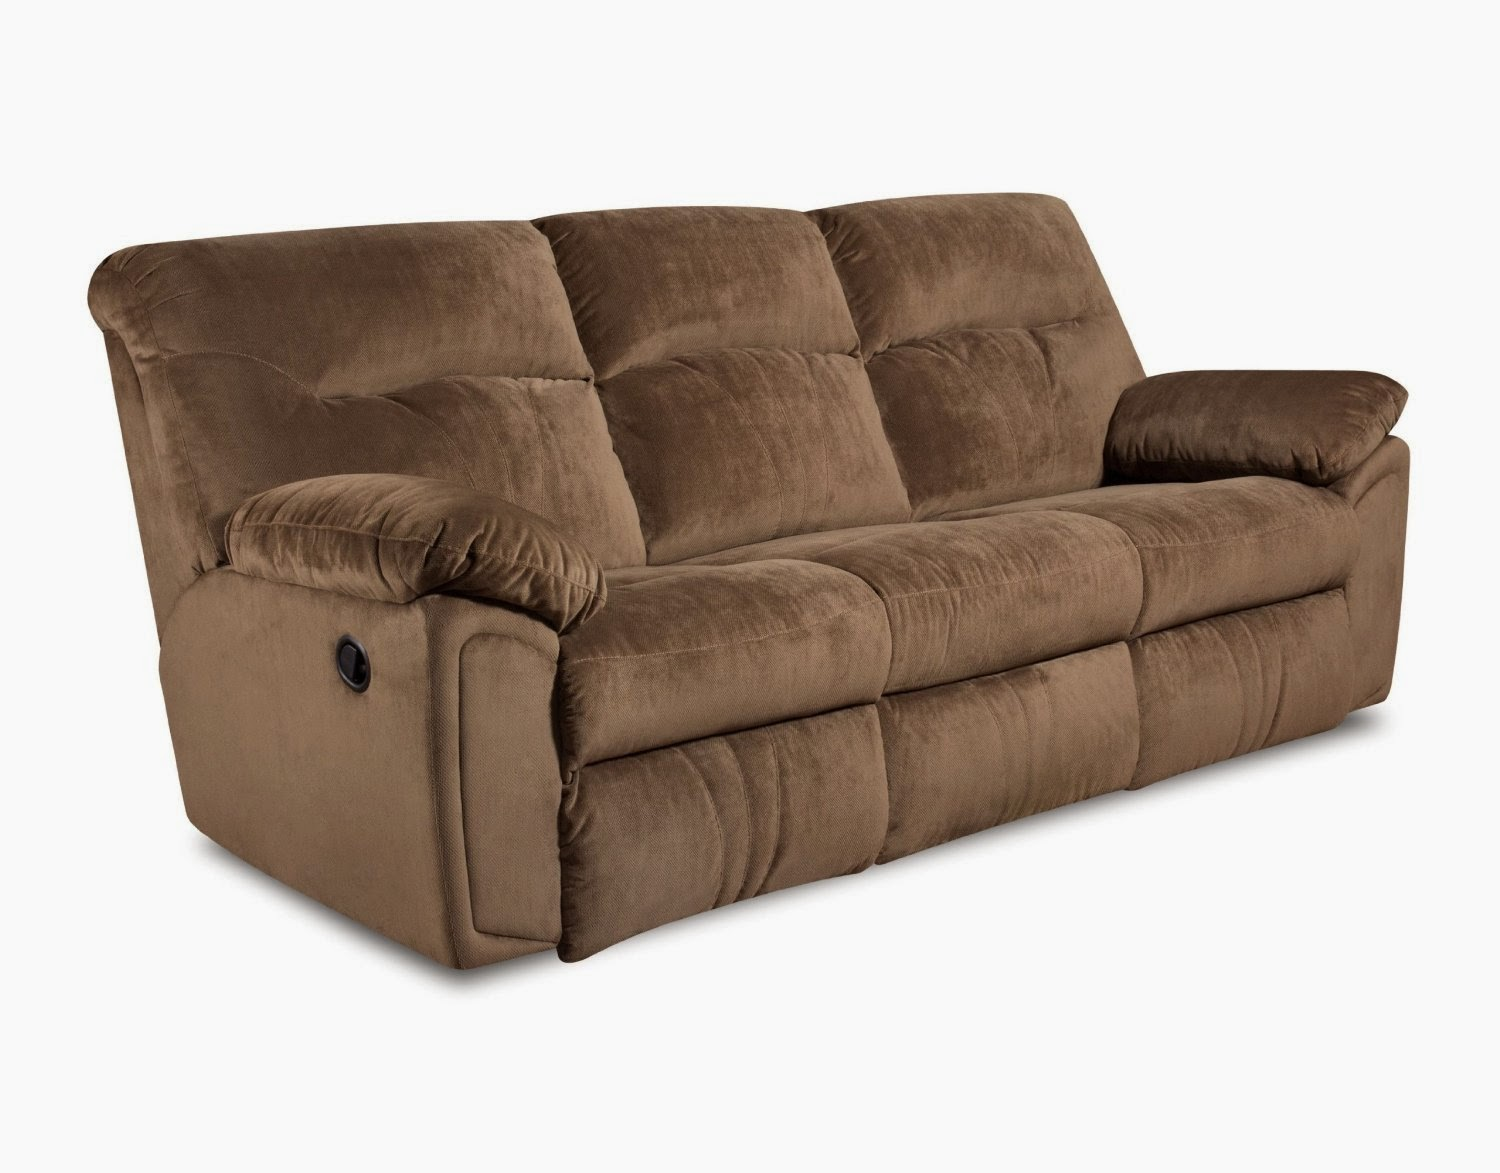 Reclining sofa loveseat and chair sets southern motion reclining leather sofa Sofa loveseat